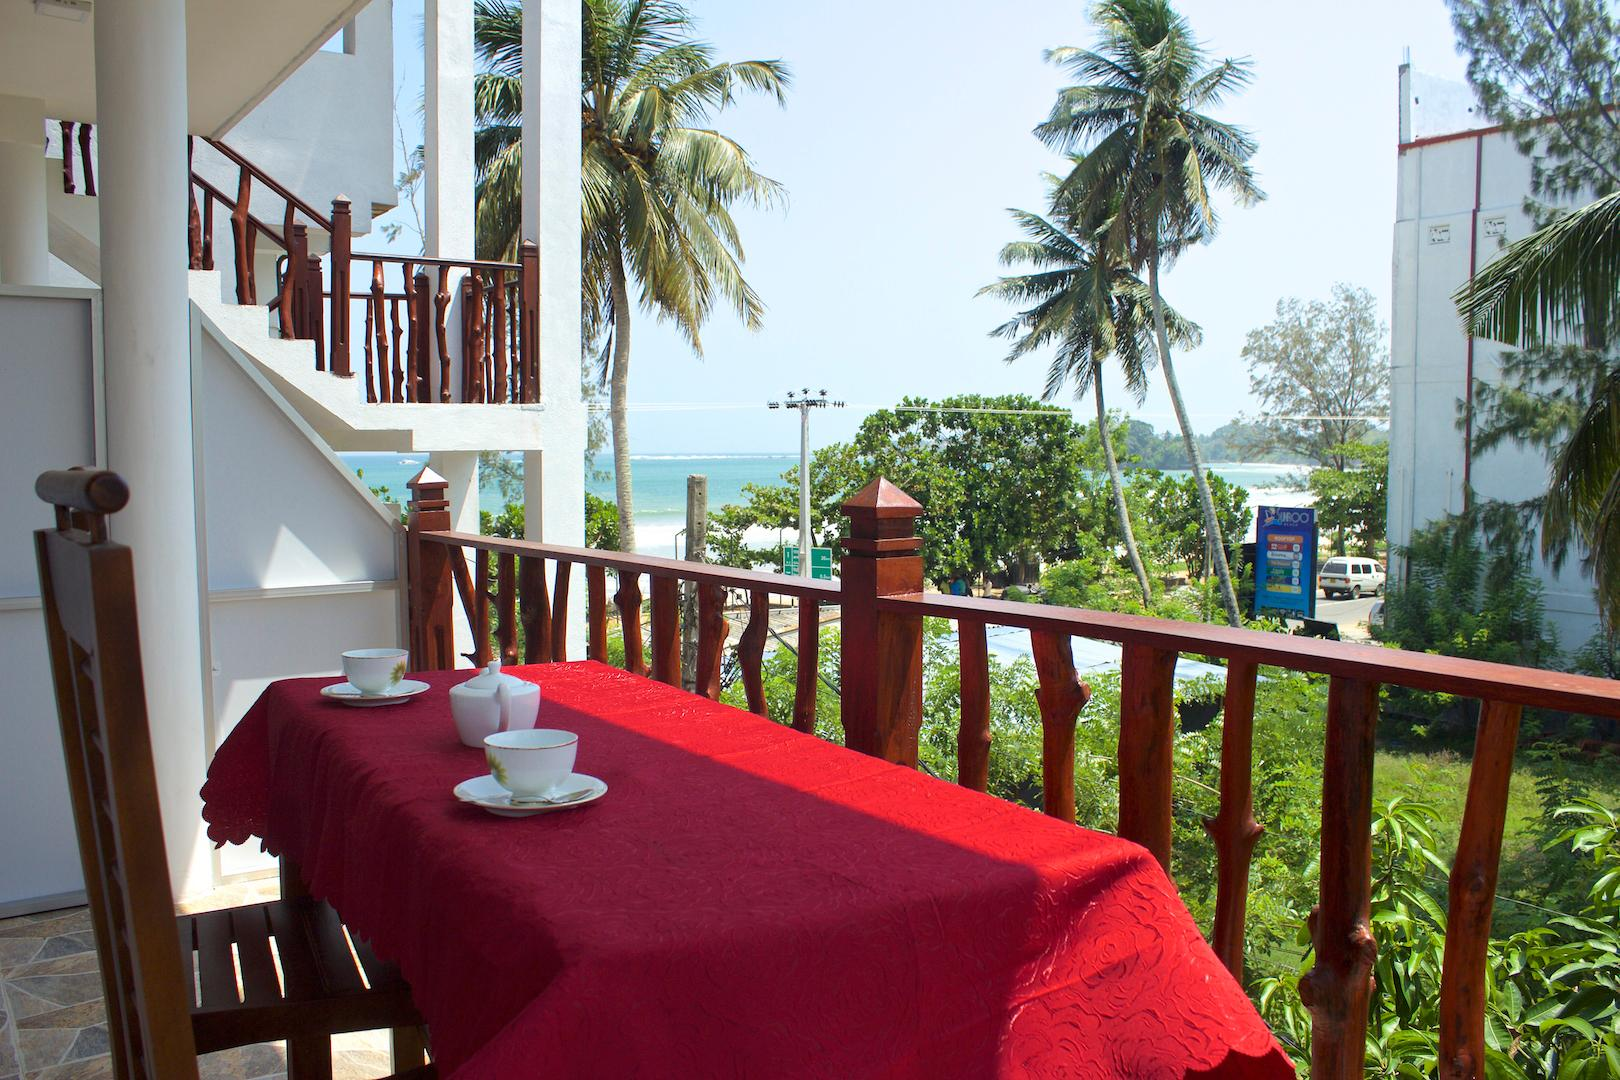 Double Lux Room In Hotel 50m Far From Beach